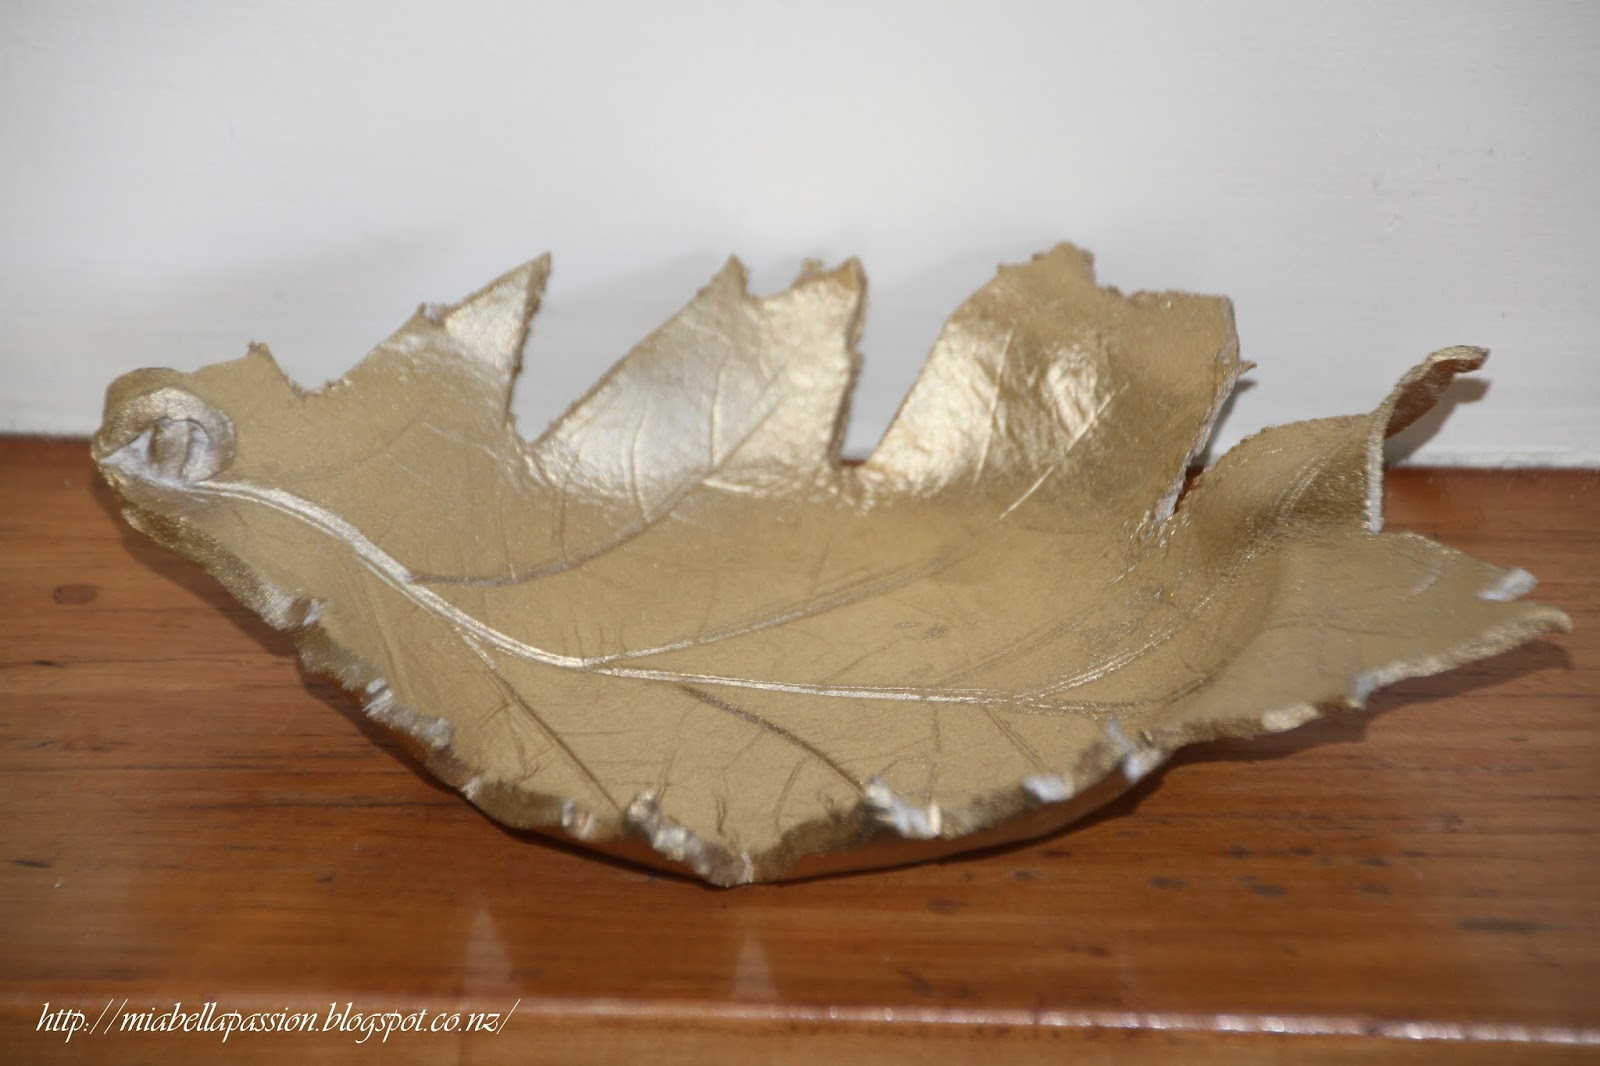 Mia Bella Passions Handcrafted Air Dry Clay Leaf Bowls